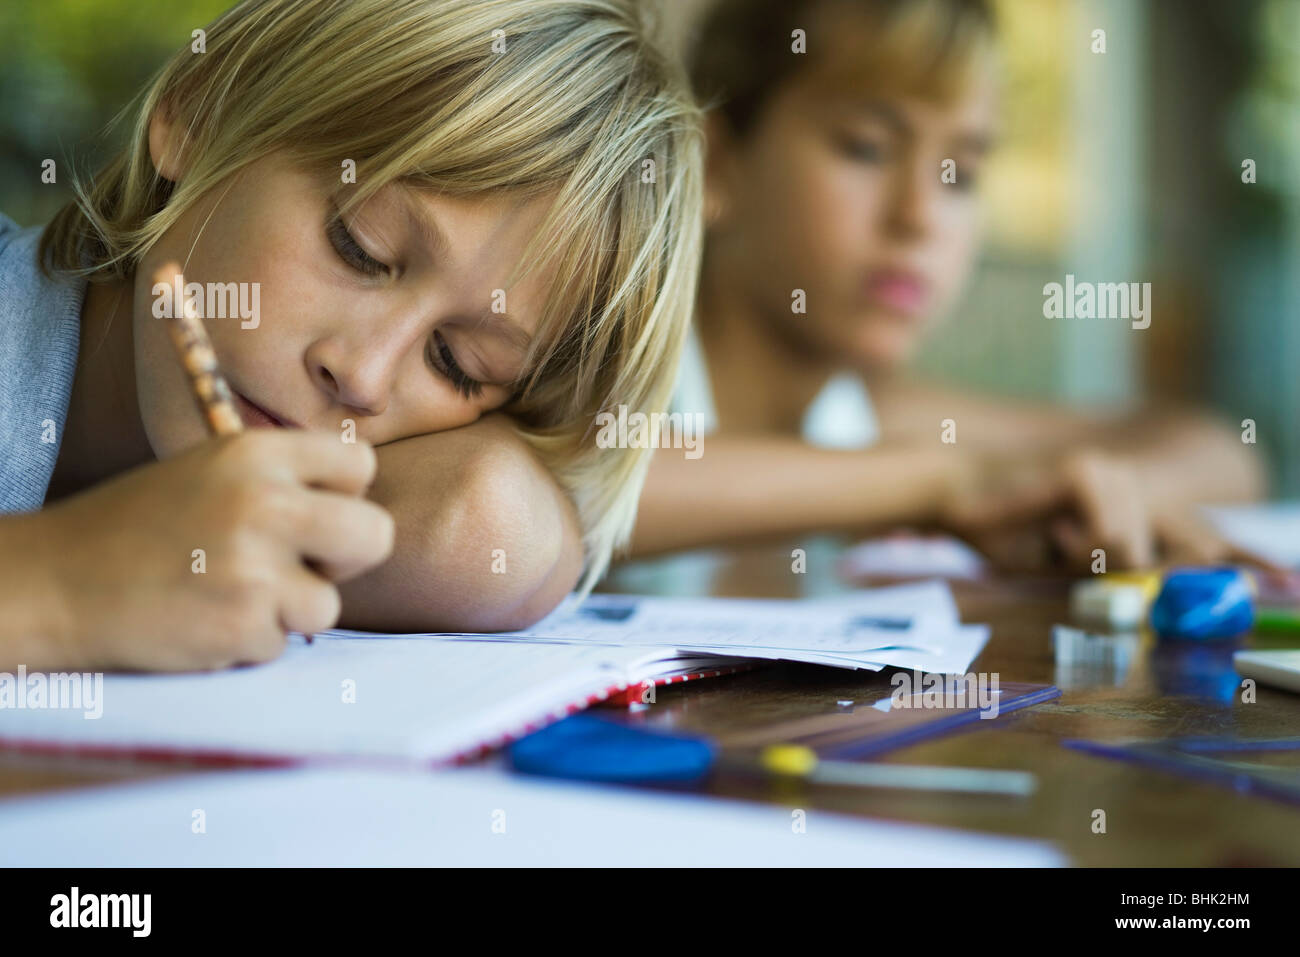 Junior high student resting head on arm while writing assignment - Stock Image